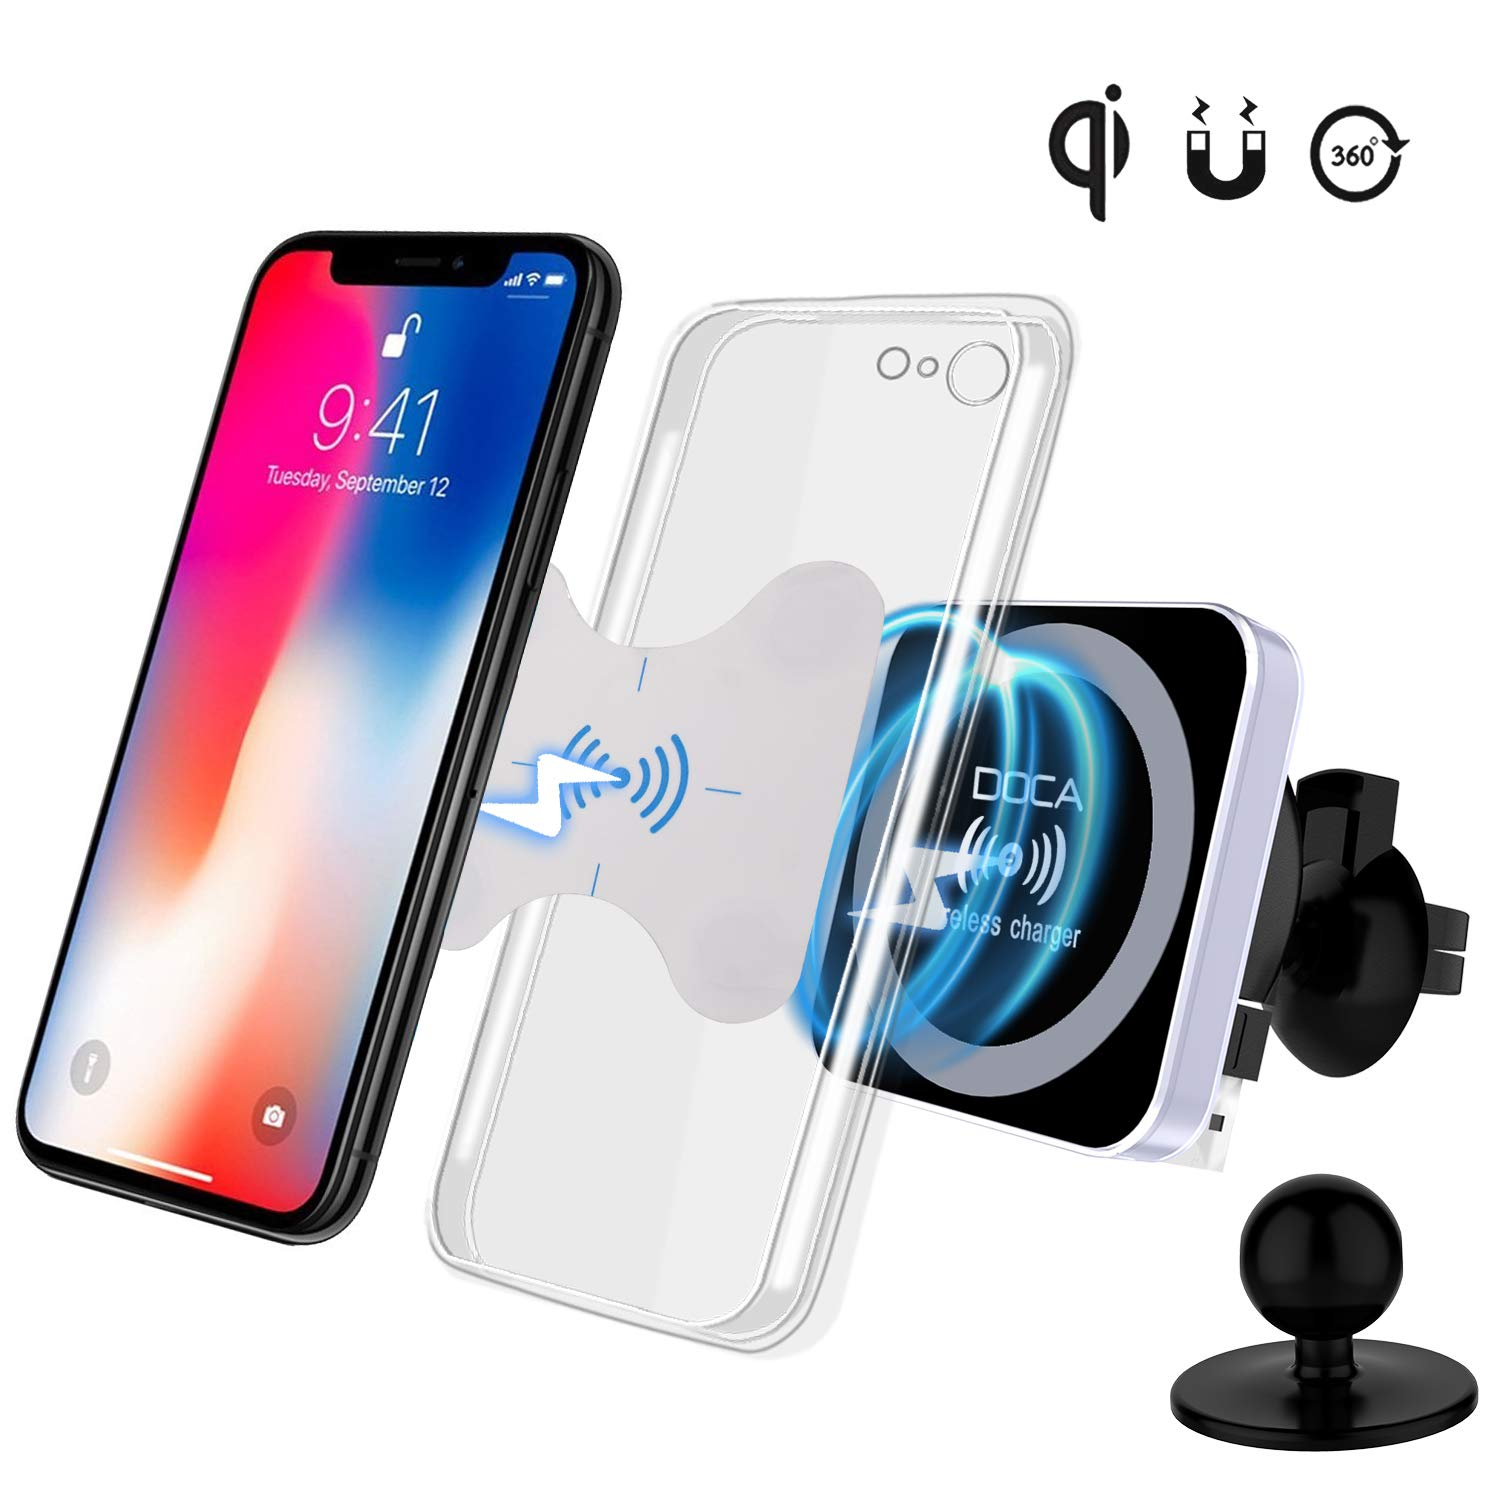 DOCA Magnetic Wireless Car Charger, QI Wireless Car Charger Air Vent Mount Holder for Samsung Galaxy Note 8 S8/S8 Plus S7 Edge, iOS,Android & All QI Enabled Devices